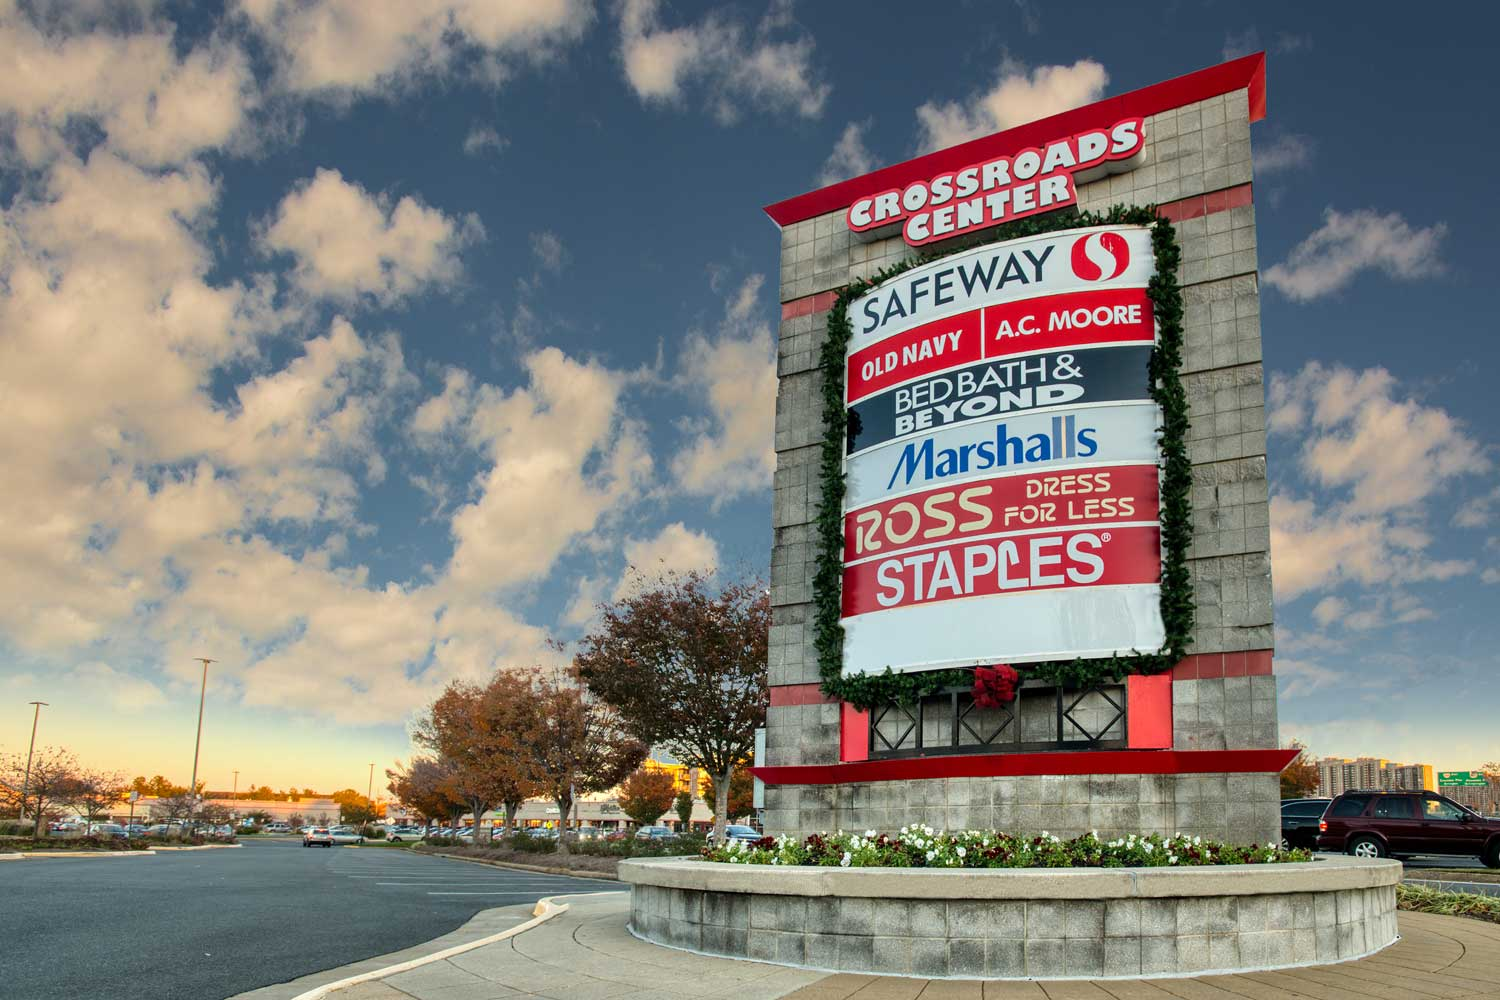 Crossroads Center is 5 minutes from Barcroft Plaza Apartments in Falls Church, VA